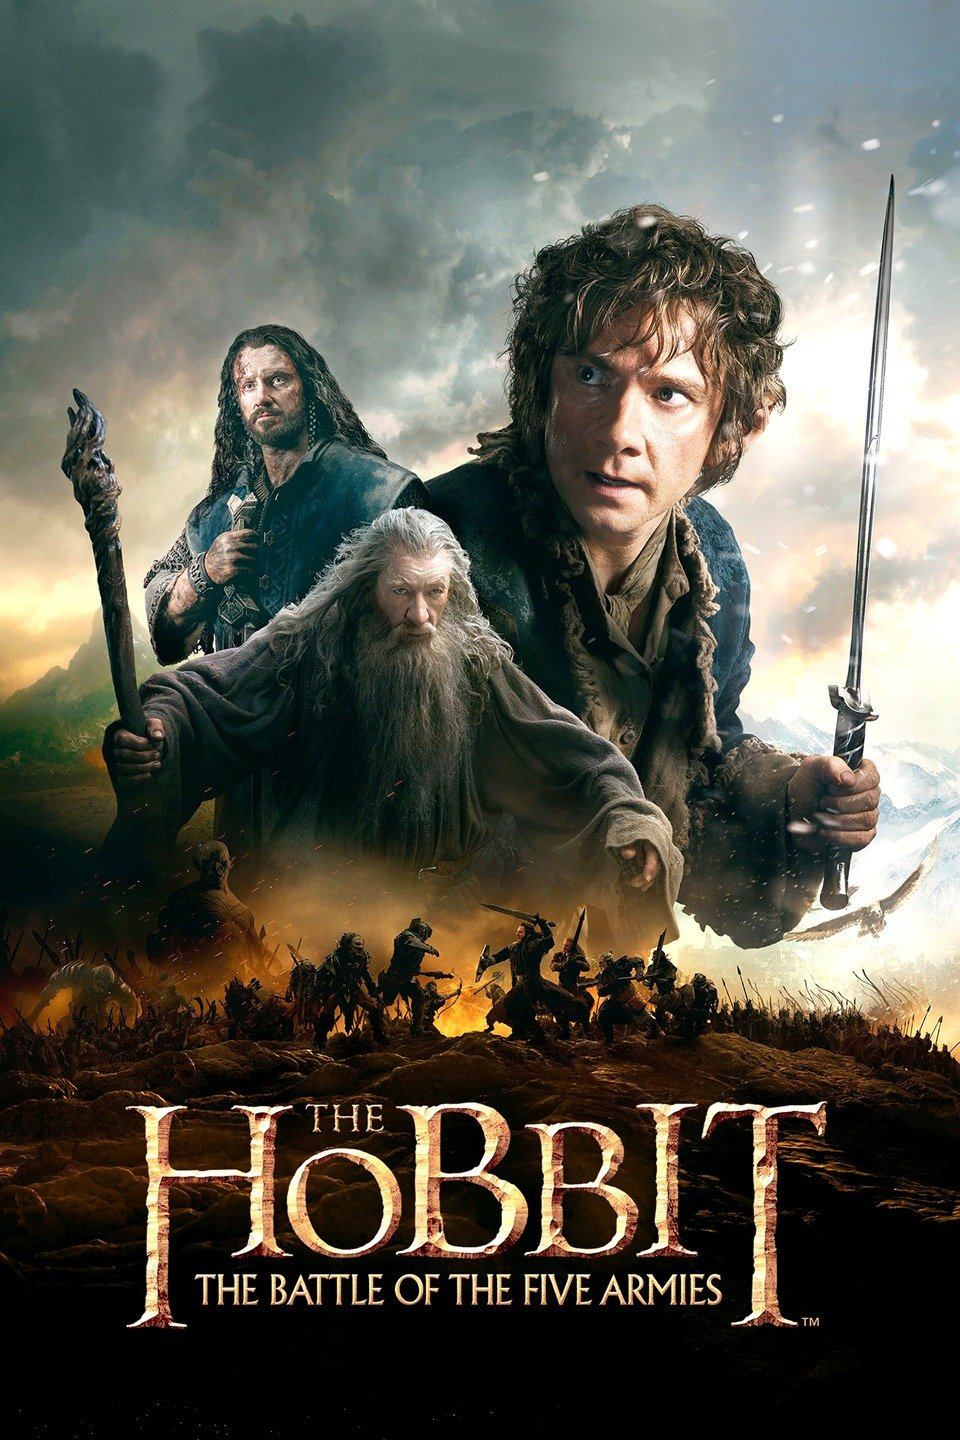 The Hobbit The Battle Of The Five Armies 2014 Soundeffects Wiki Fandom